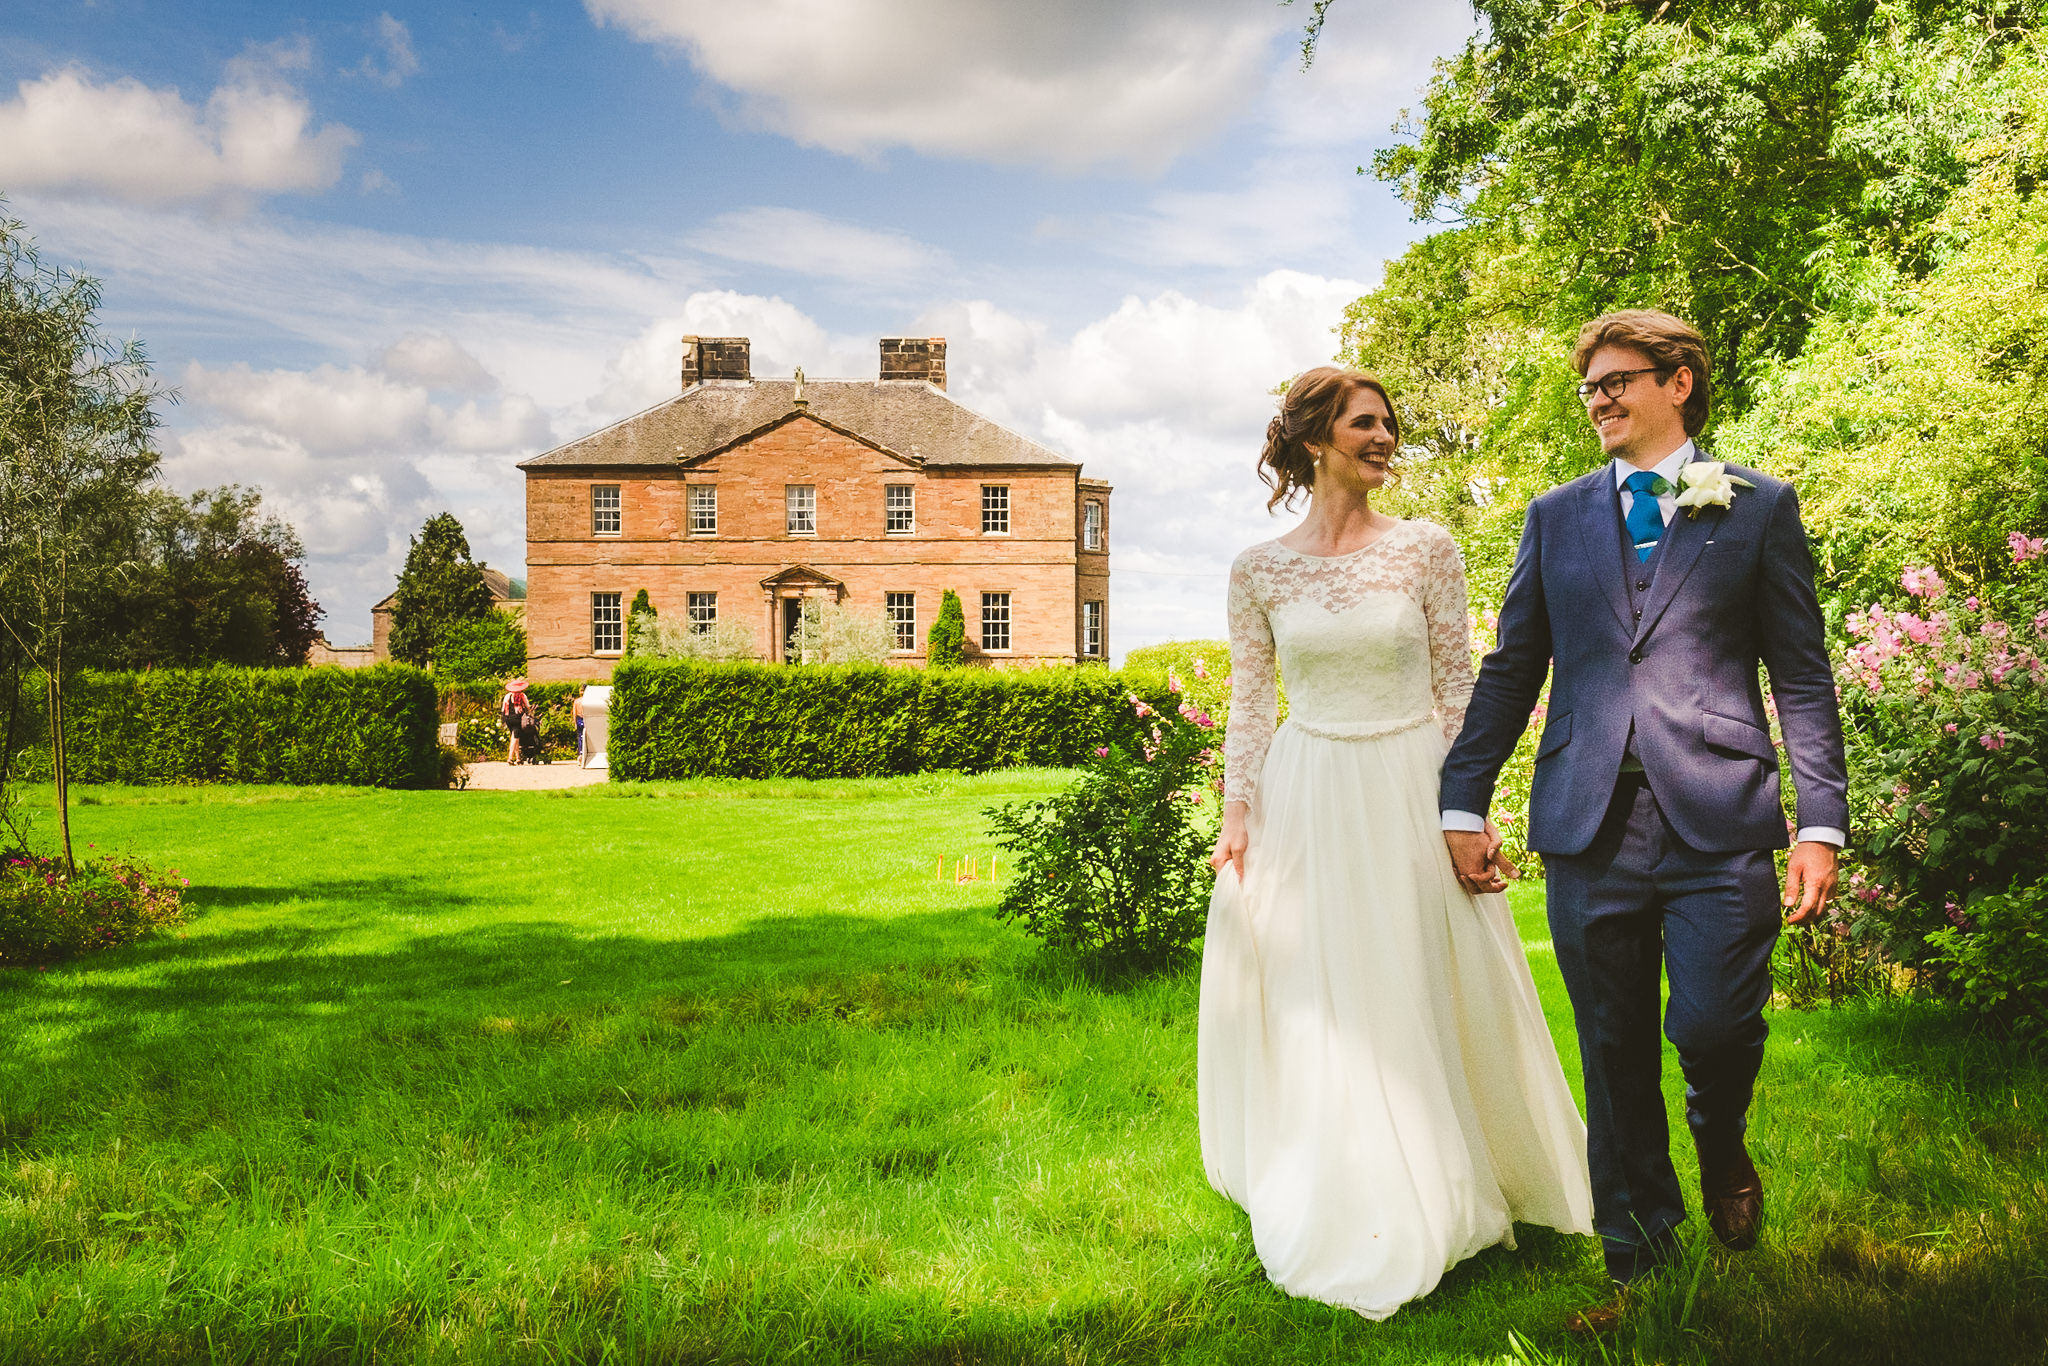 We had fabulous weather for Alice and Andrew's laid back wedding at Newton Hall in Northumberland